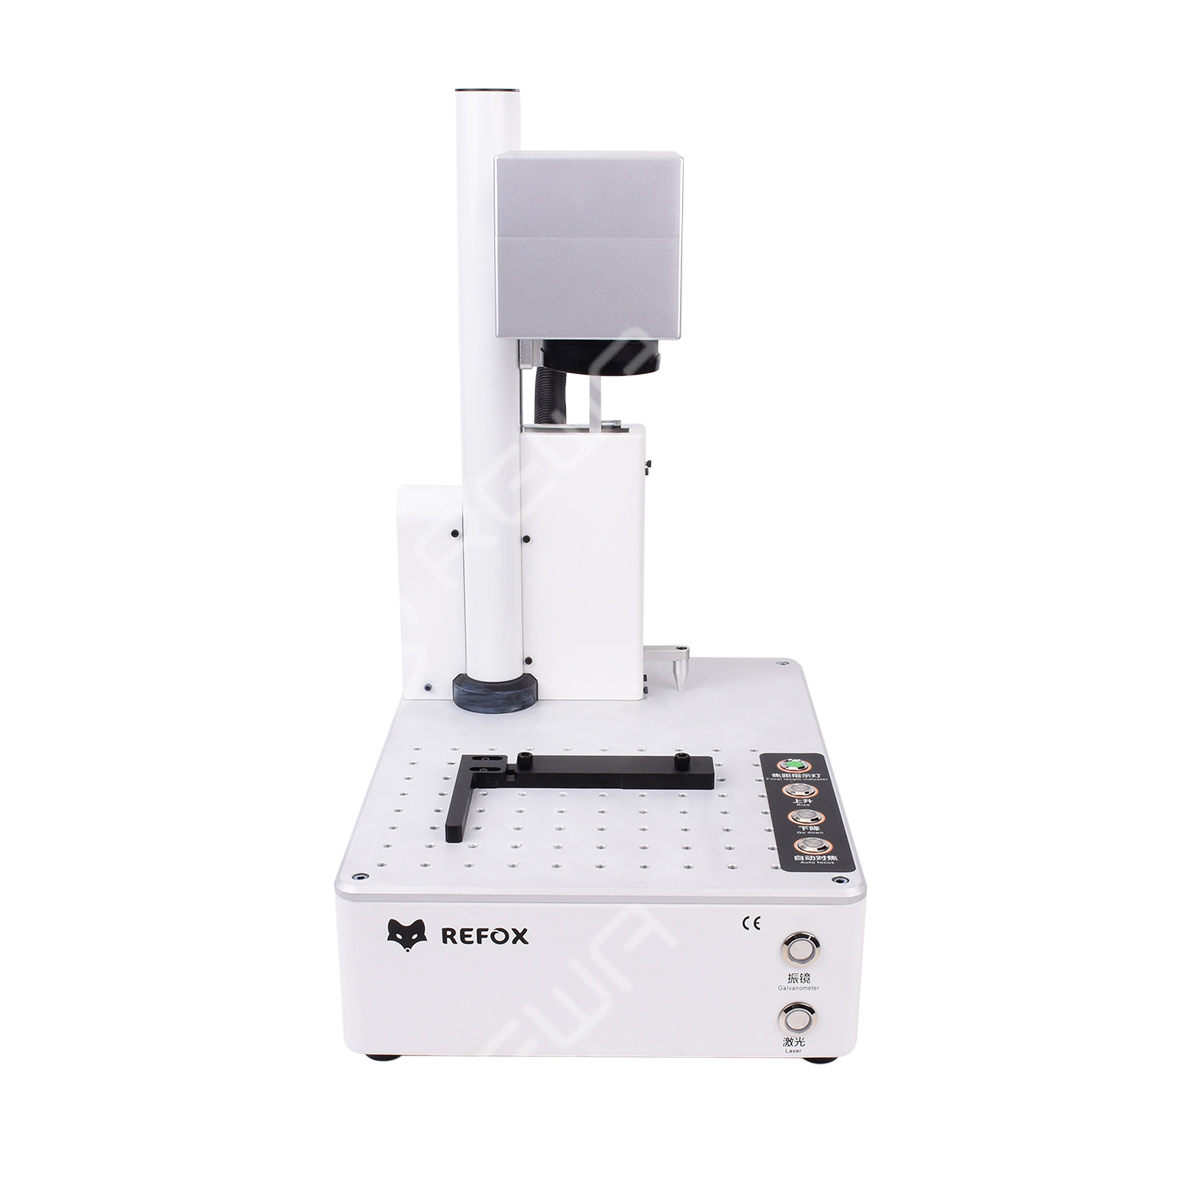 REFOX Upgraded Laser Marking Machine (Mini Ver.)